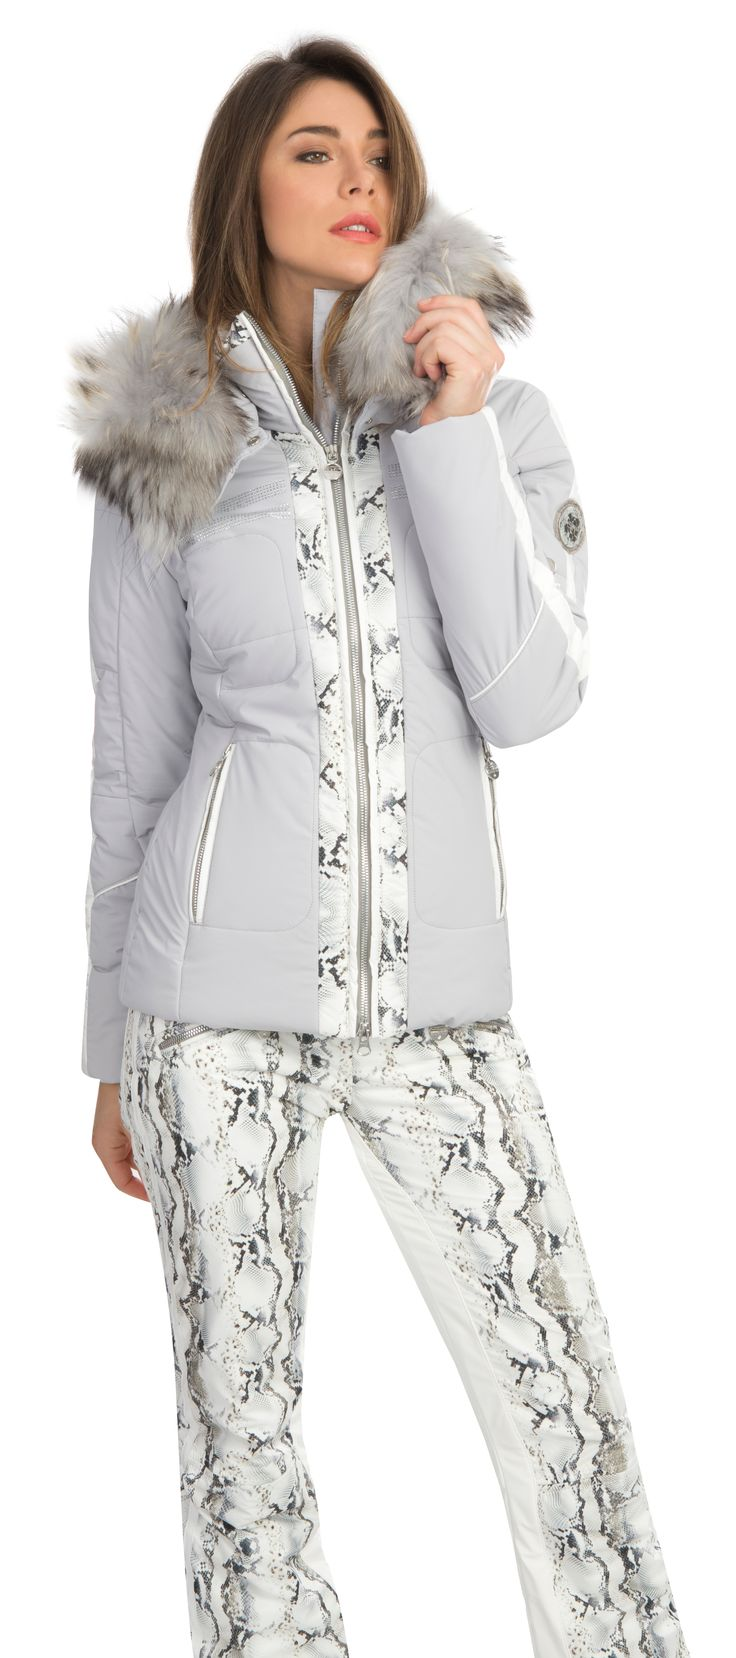 Kirana, a luxe grey ski jacket with diamante and snake patterns. By Sportalm  Kitzbuhel